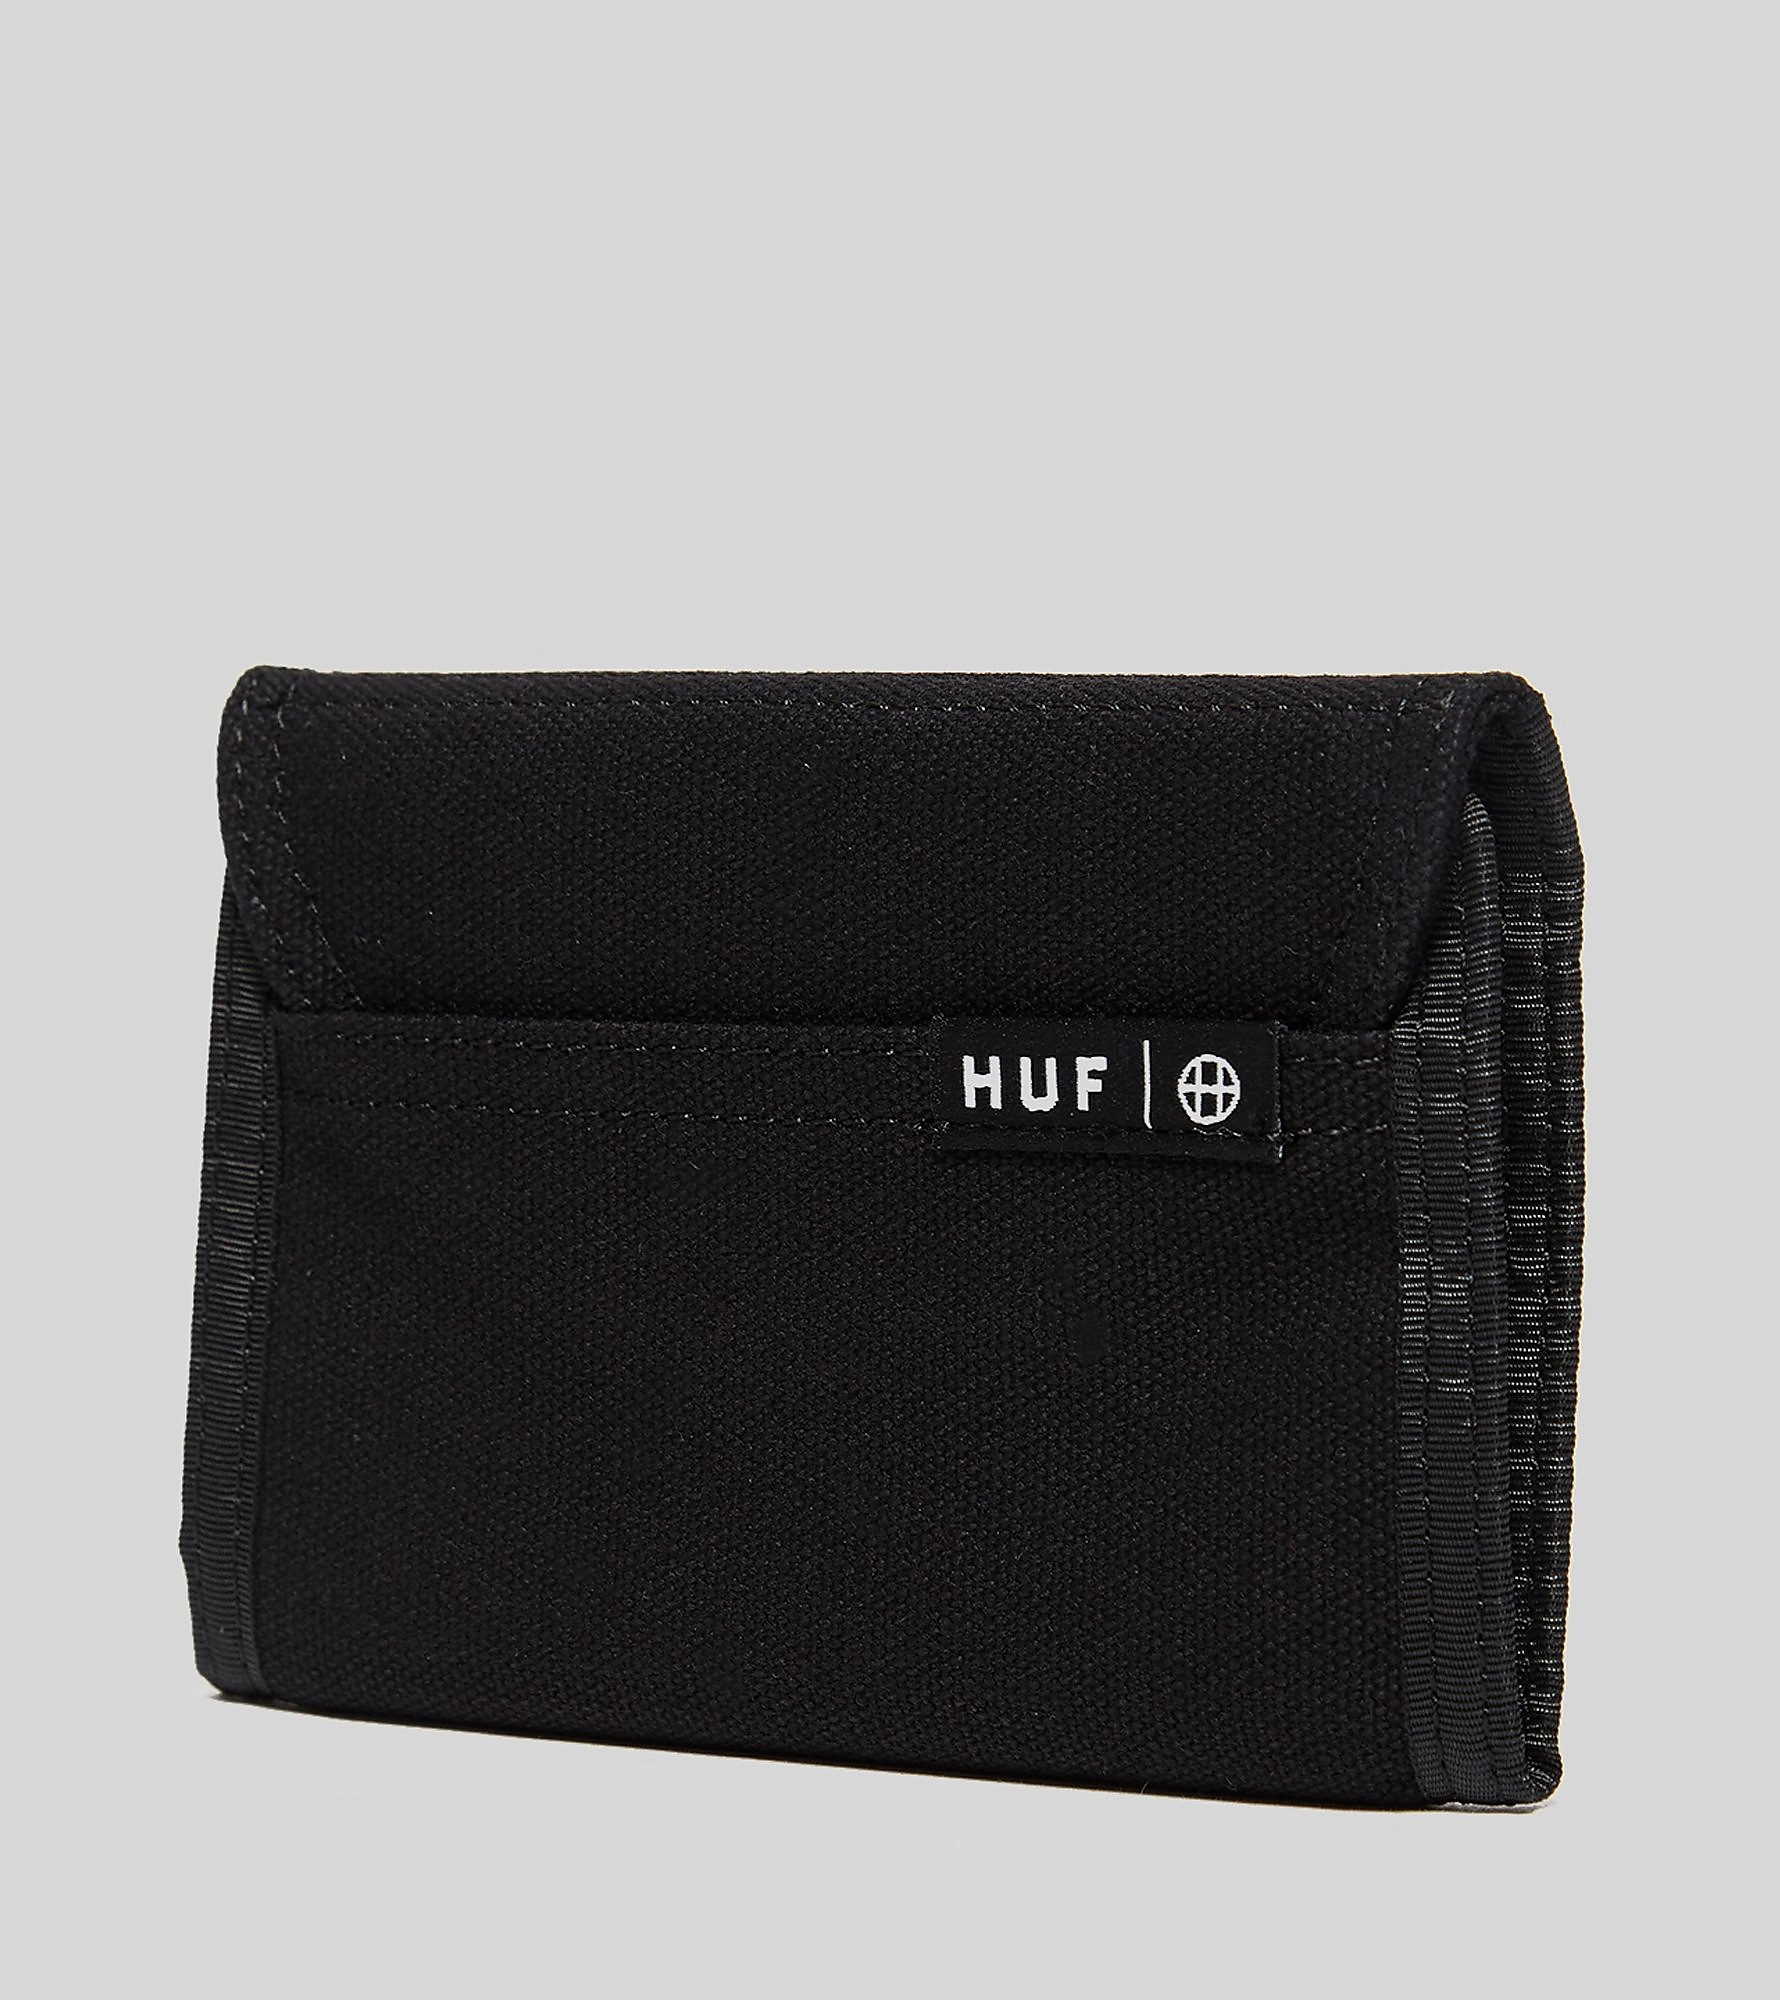 HUF Trifold Wallet